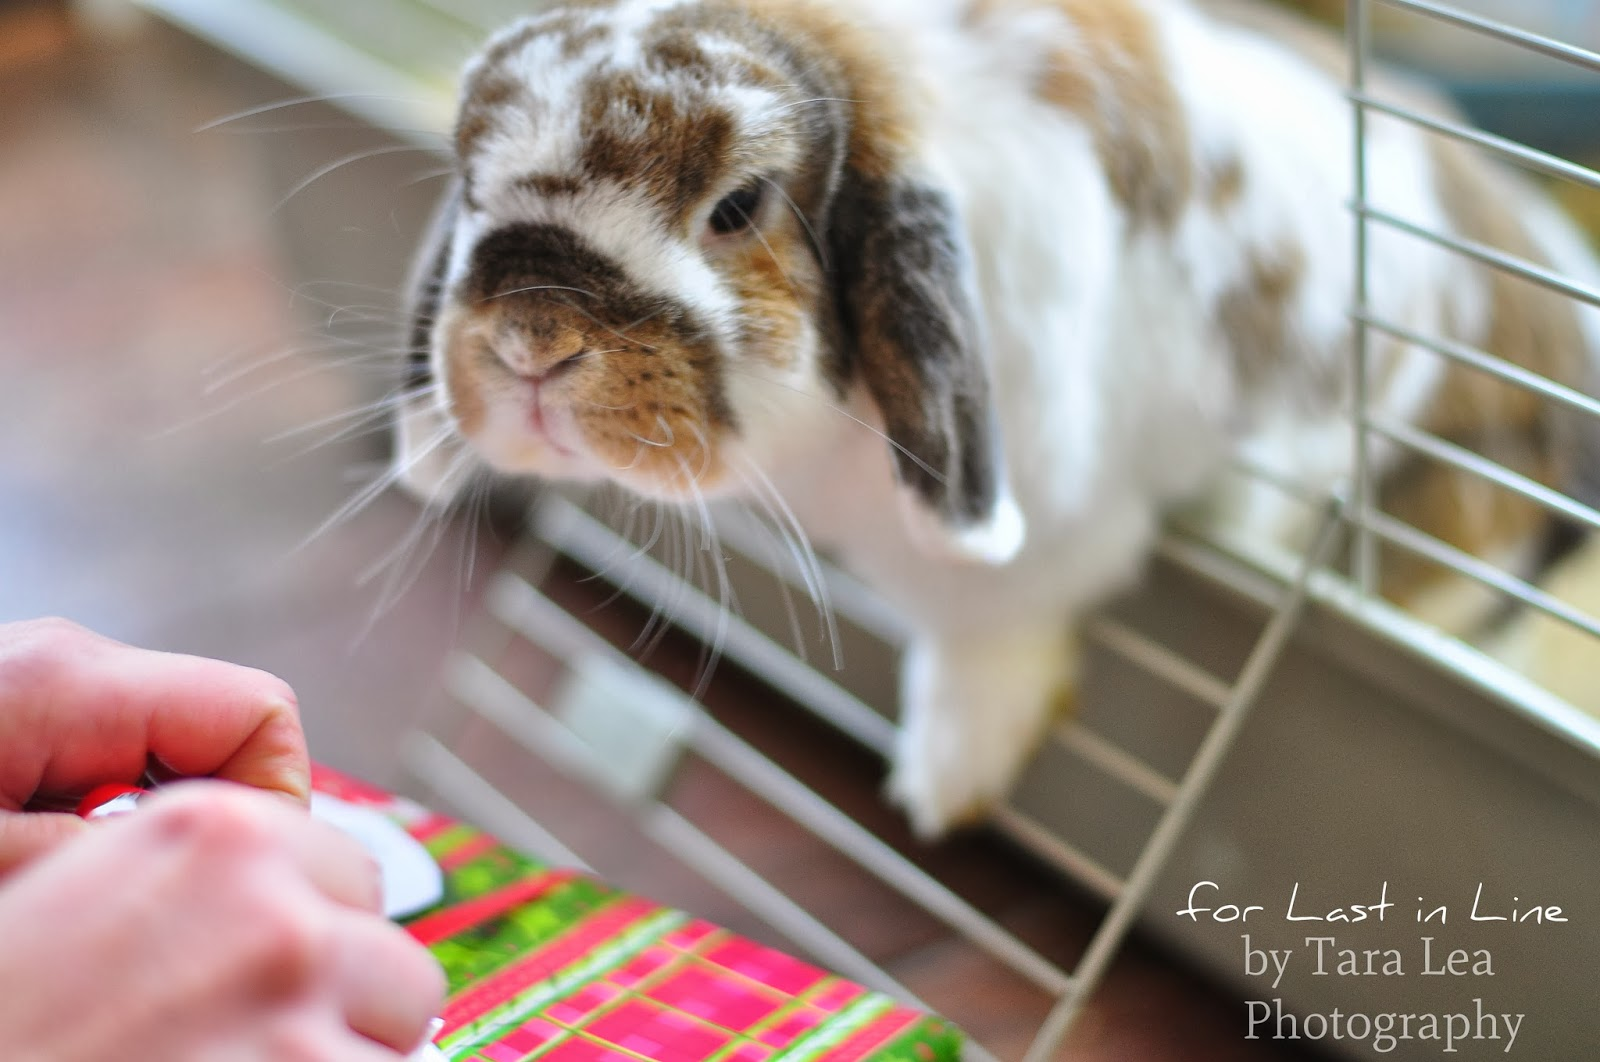 Arlo the Adorable Bunny: Forever Last in Line